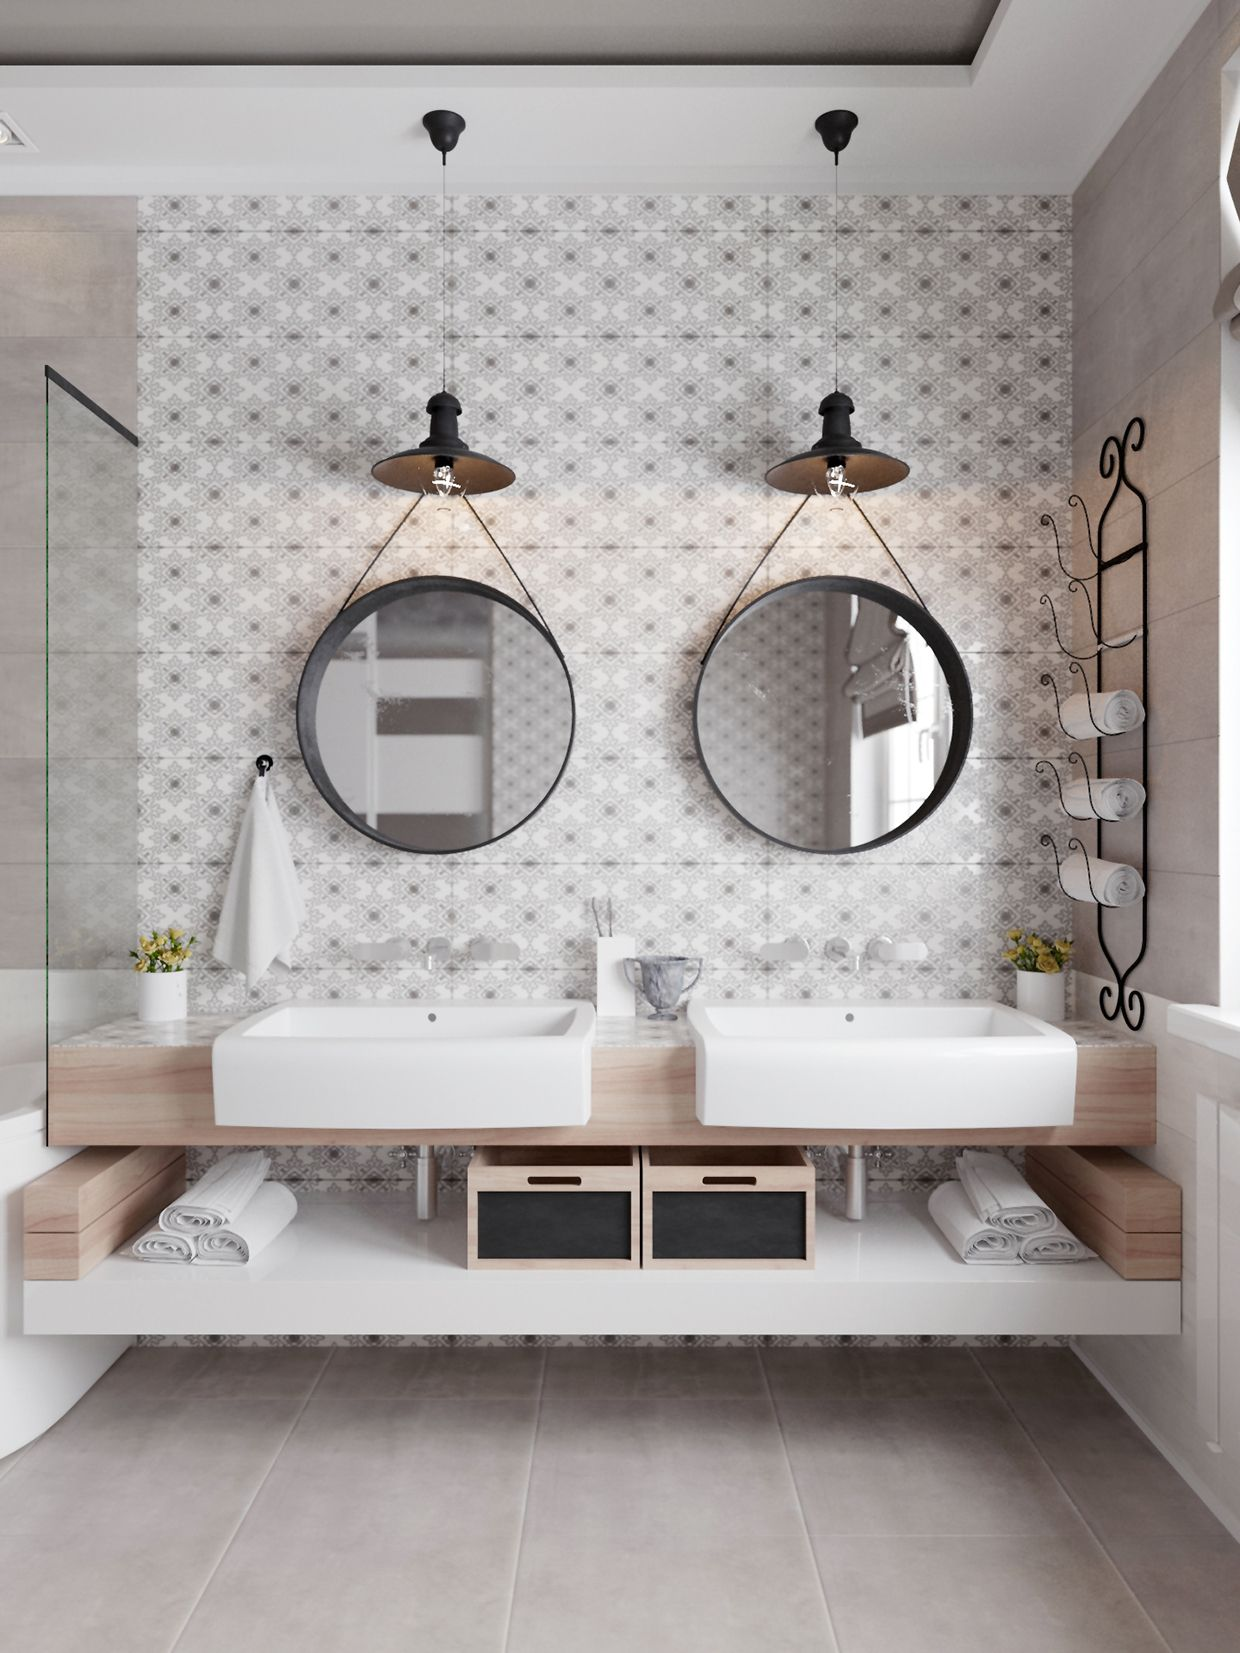 Miroir Salle De Bain Dz ~ bathroom in scandinavian style azienka dz pinterest vasque